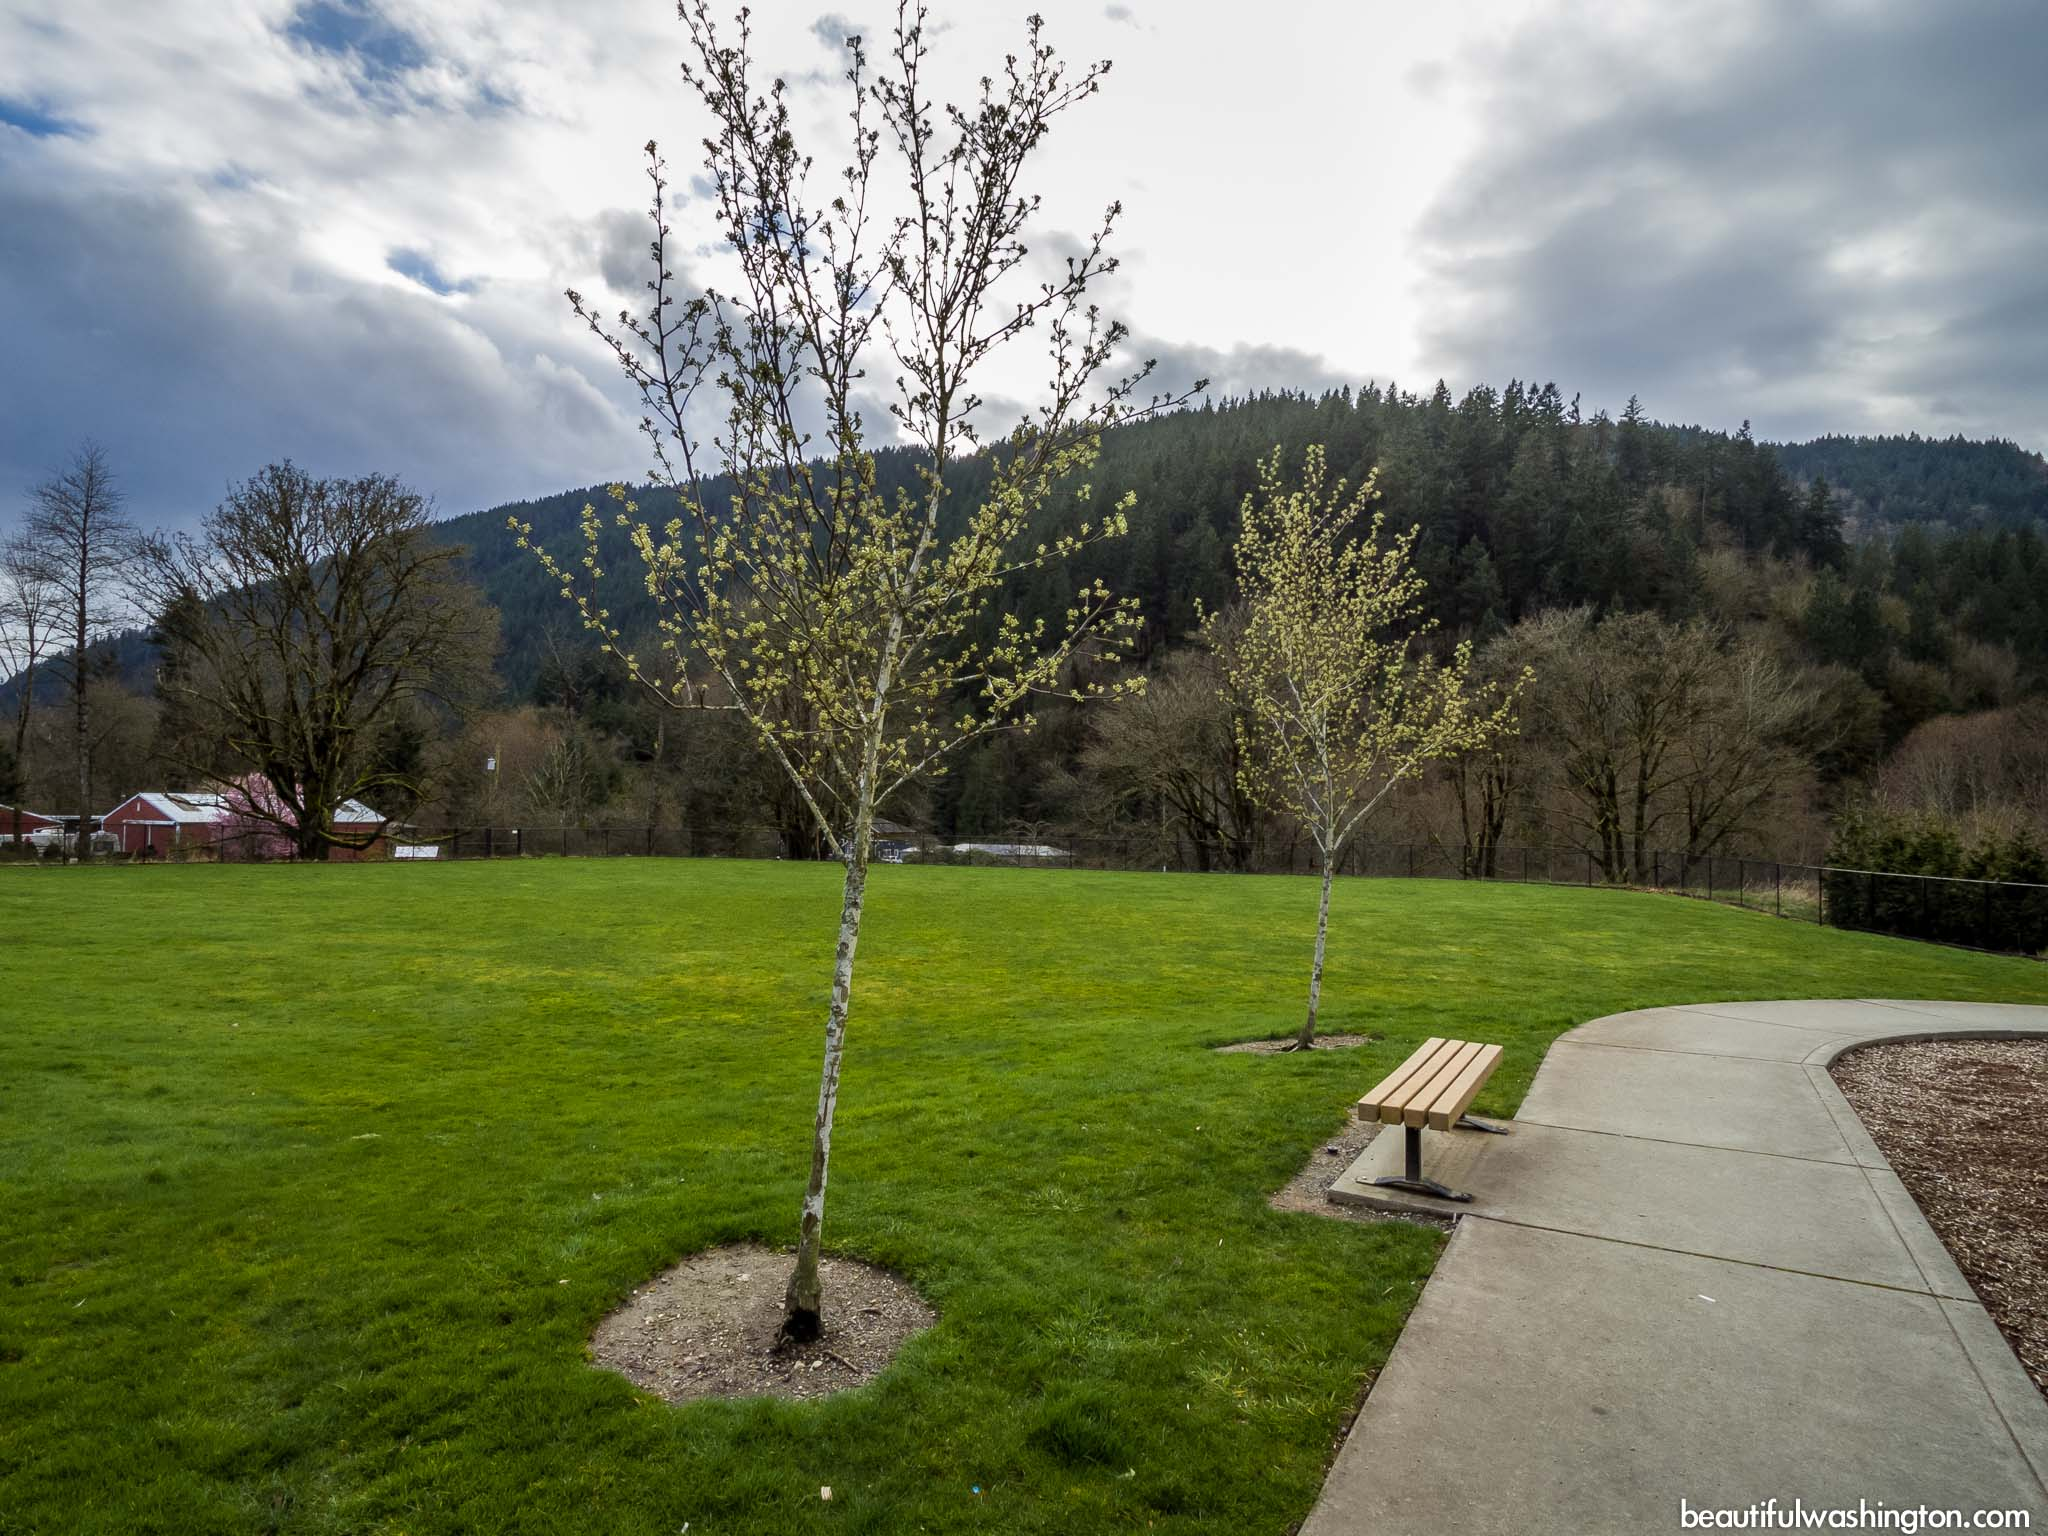 Photo from King County, City of Issaquah, Squak Valley Park